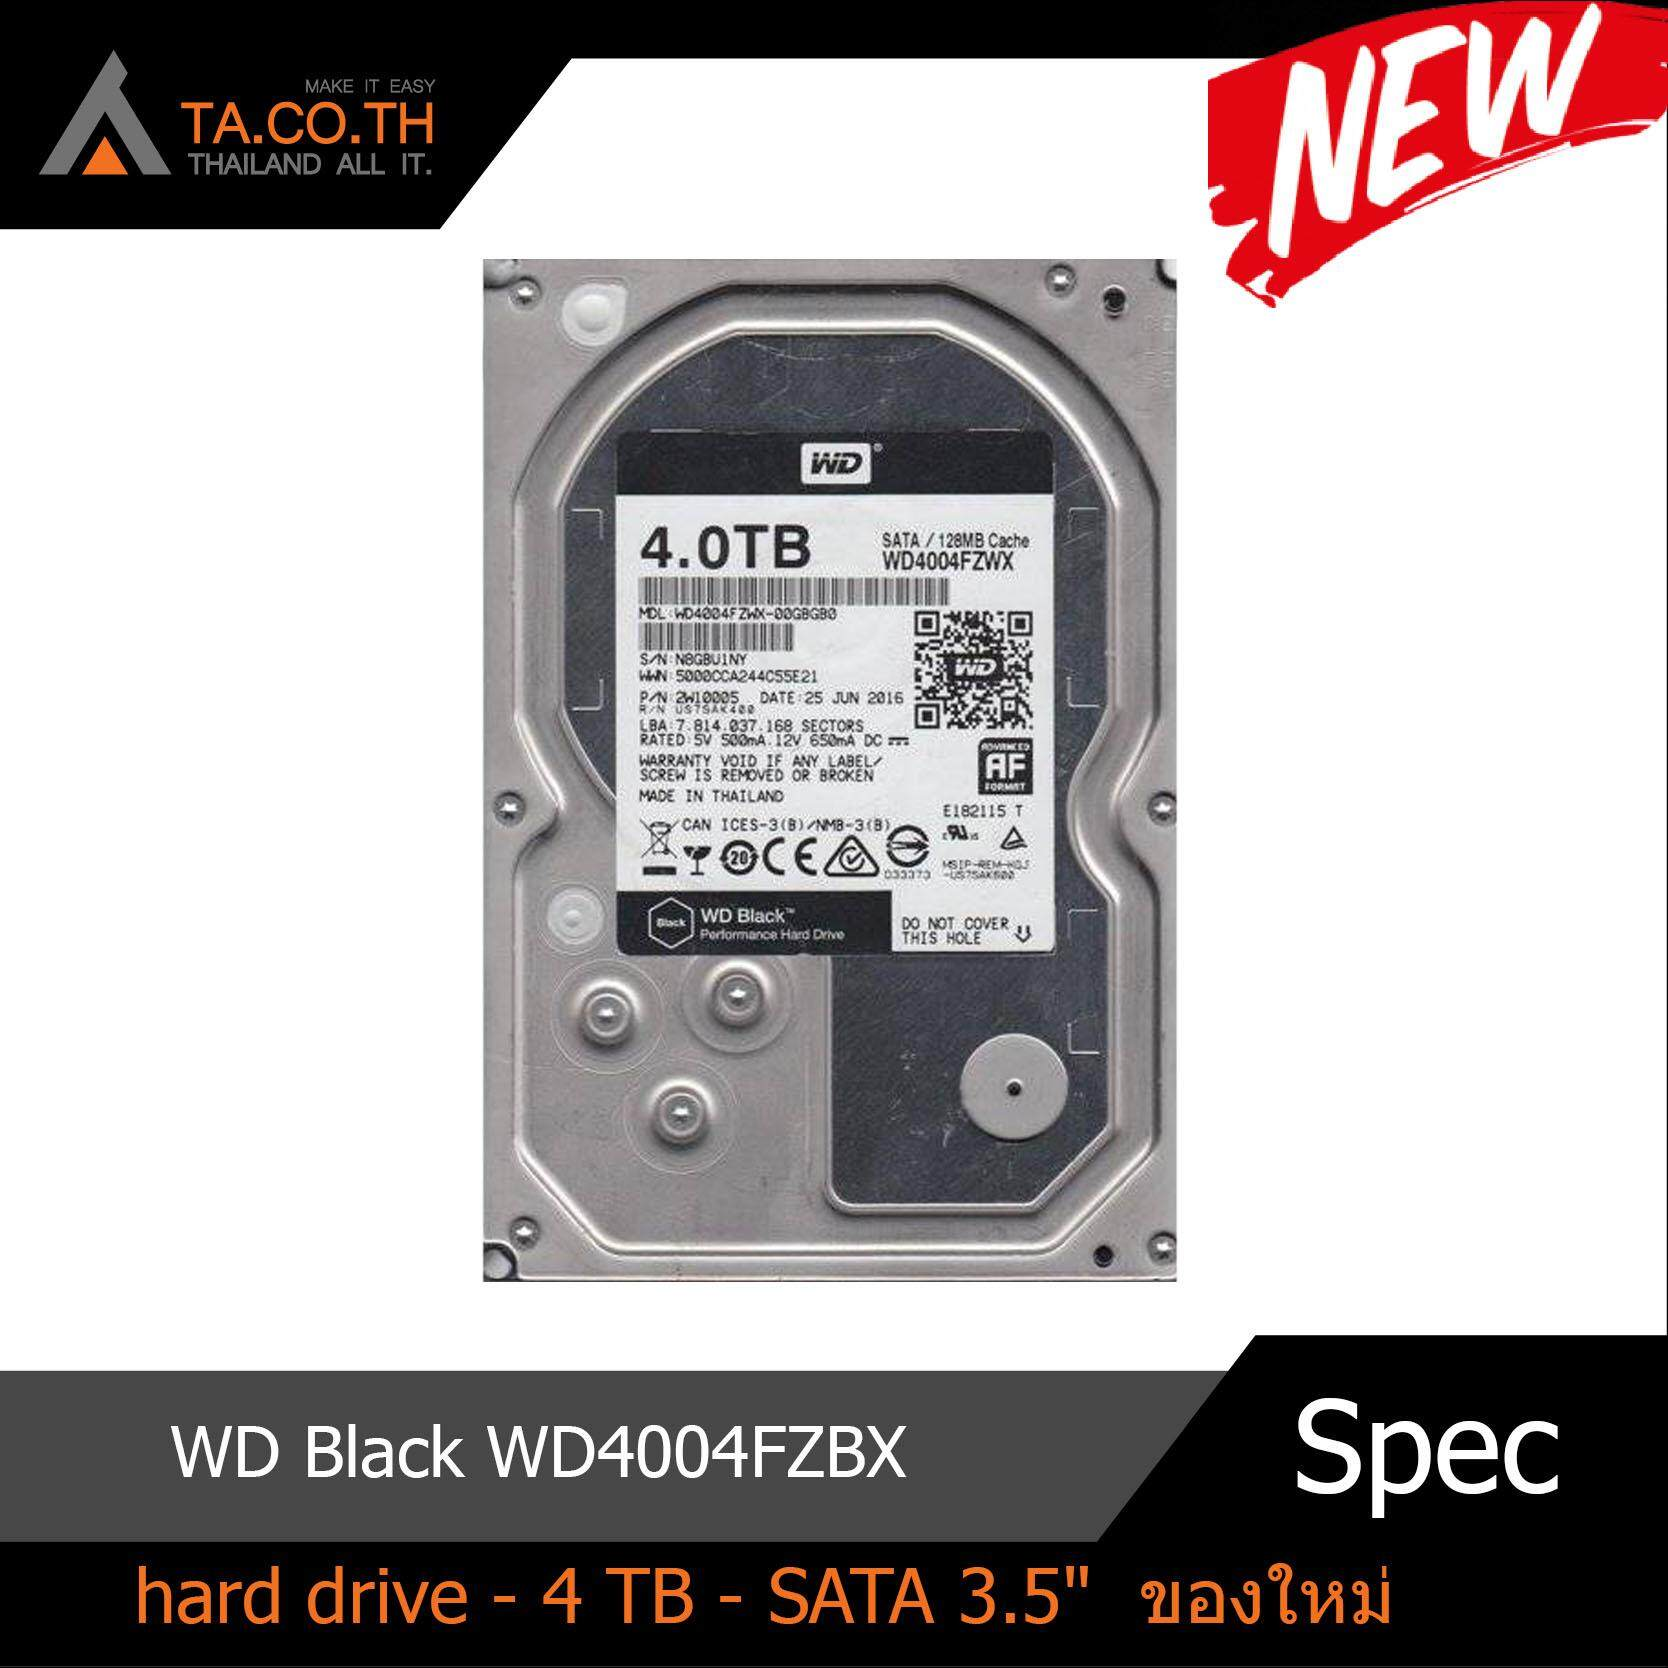 Wd Black Wd4004fzbx - Hard Drive - 4 Tb - Sata 3.5 By Thailand All It.